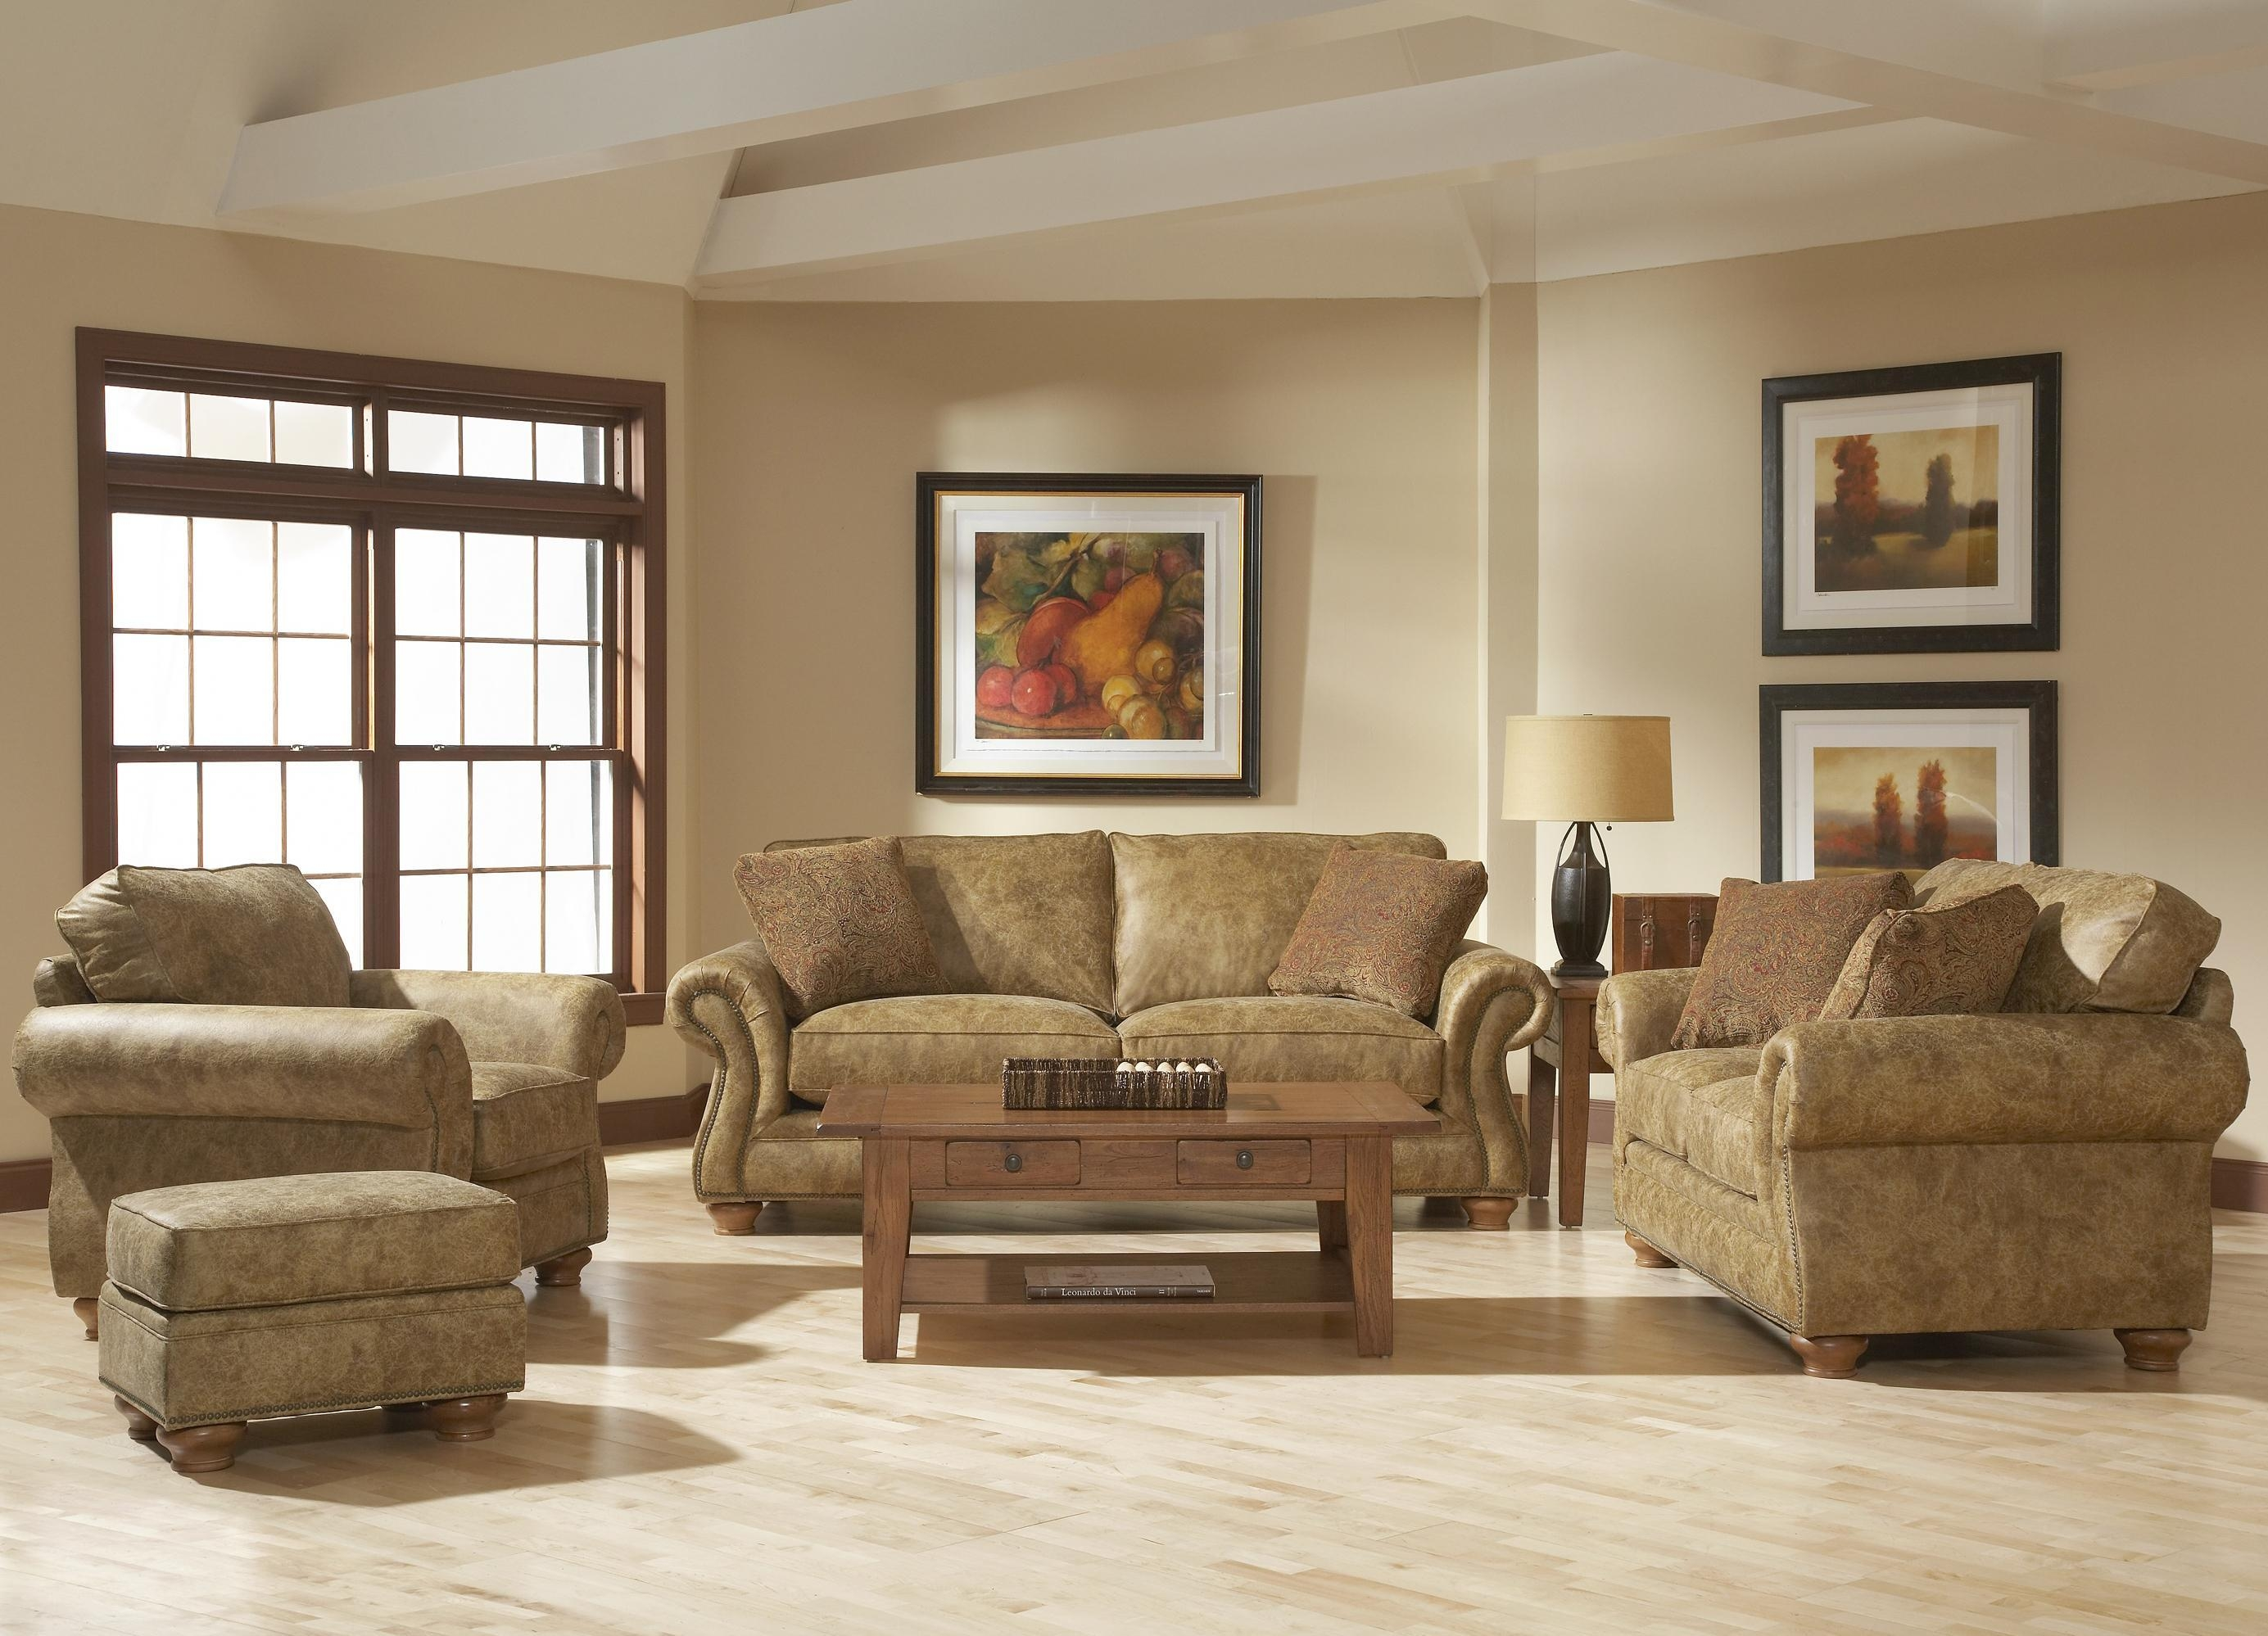 Broyhill Furniture Laramie 3 Piece Wedge Sectional Sofa – Wayside With Regard To Broyhill Sectional Sleeper Sofas (Image 6 of 20)